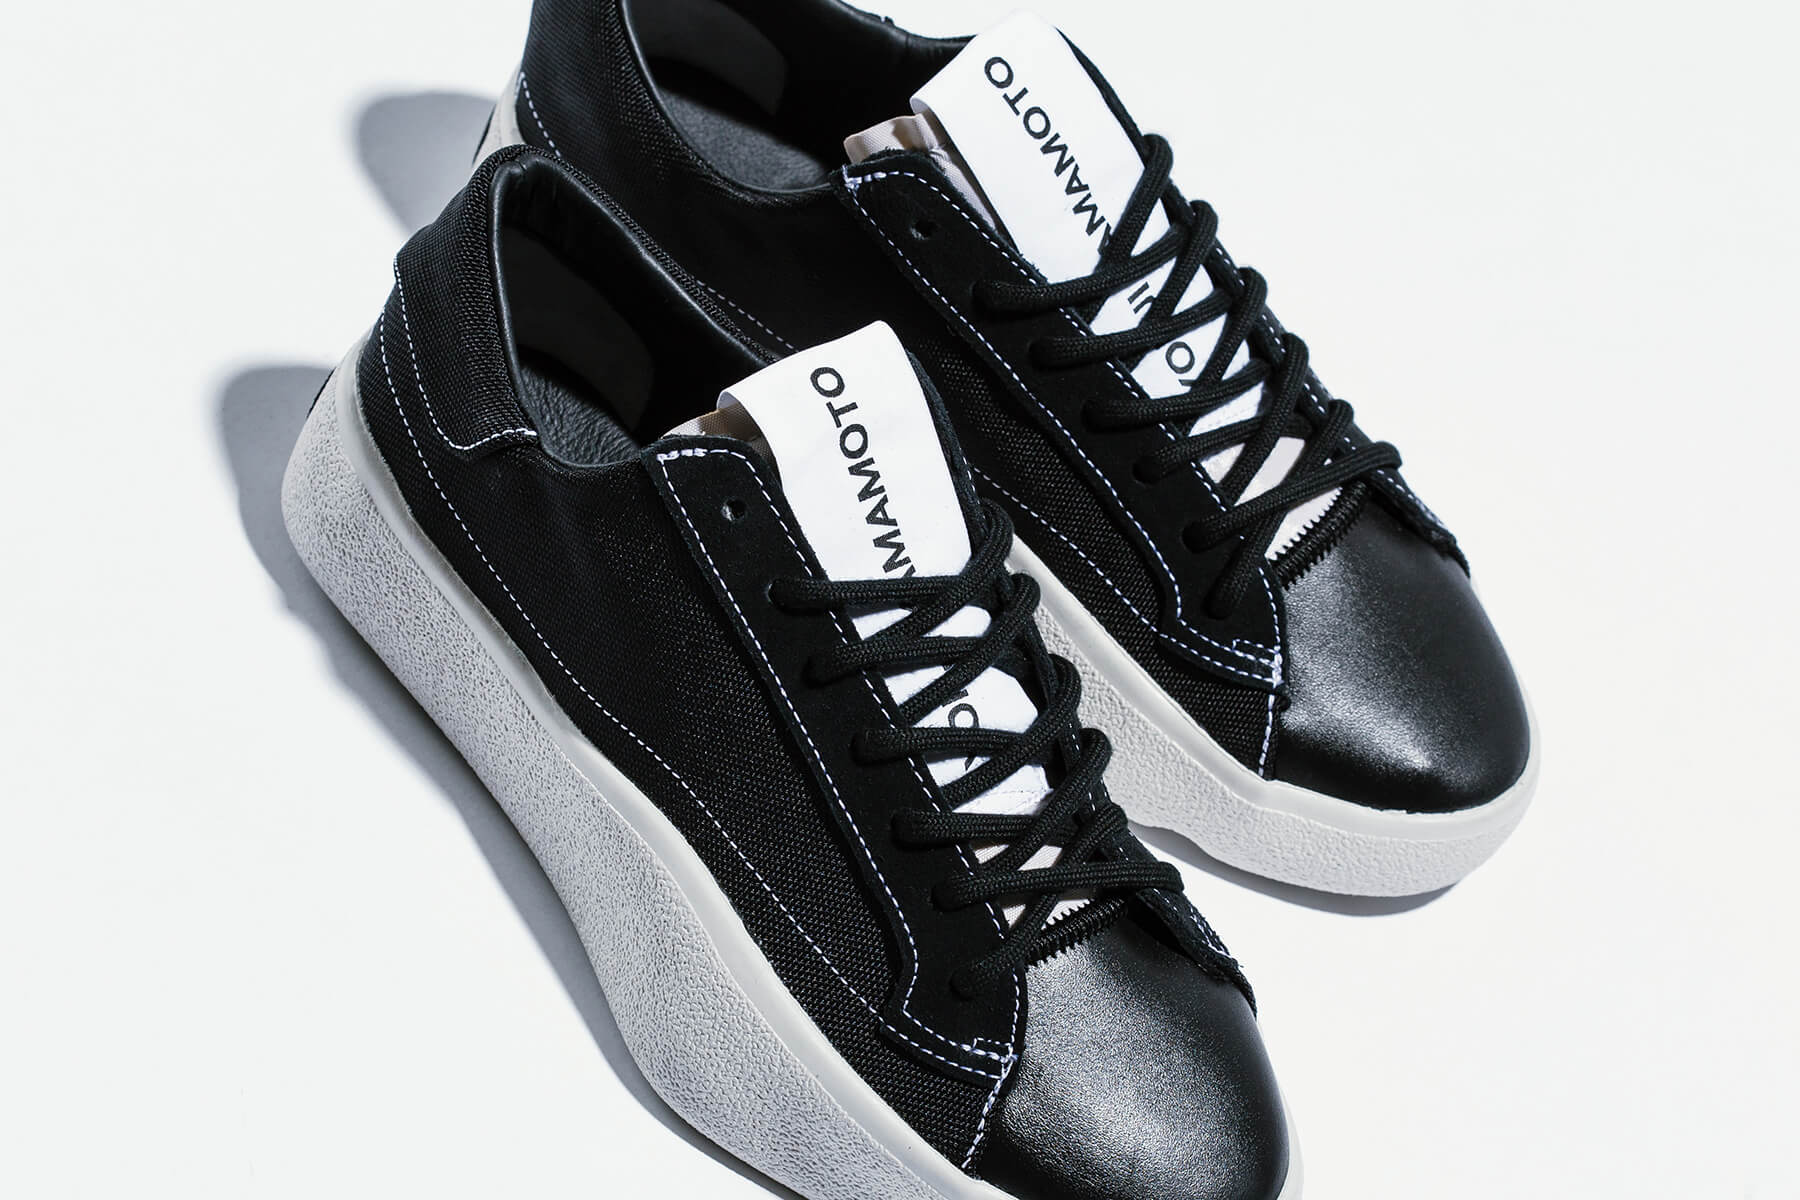 0d5915cc1b8a8 This season s offerings from adidas Y-3 include the Tangustu Lace. The  sneaker is a low top